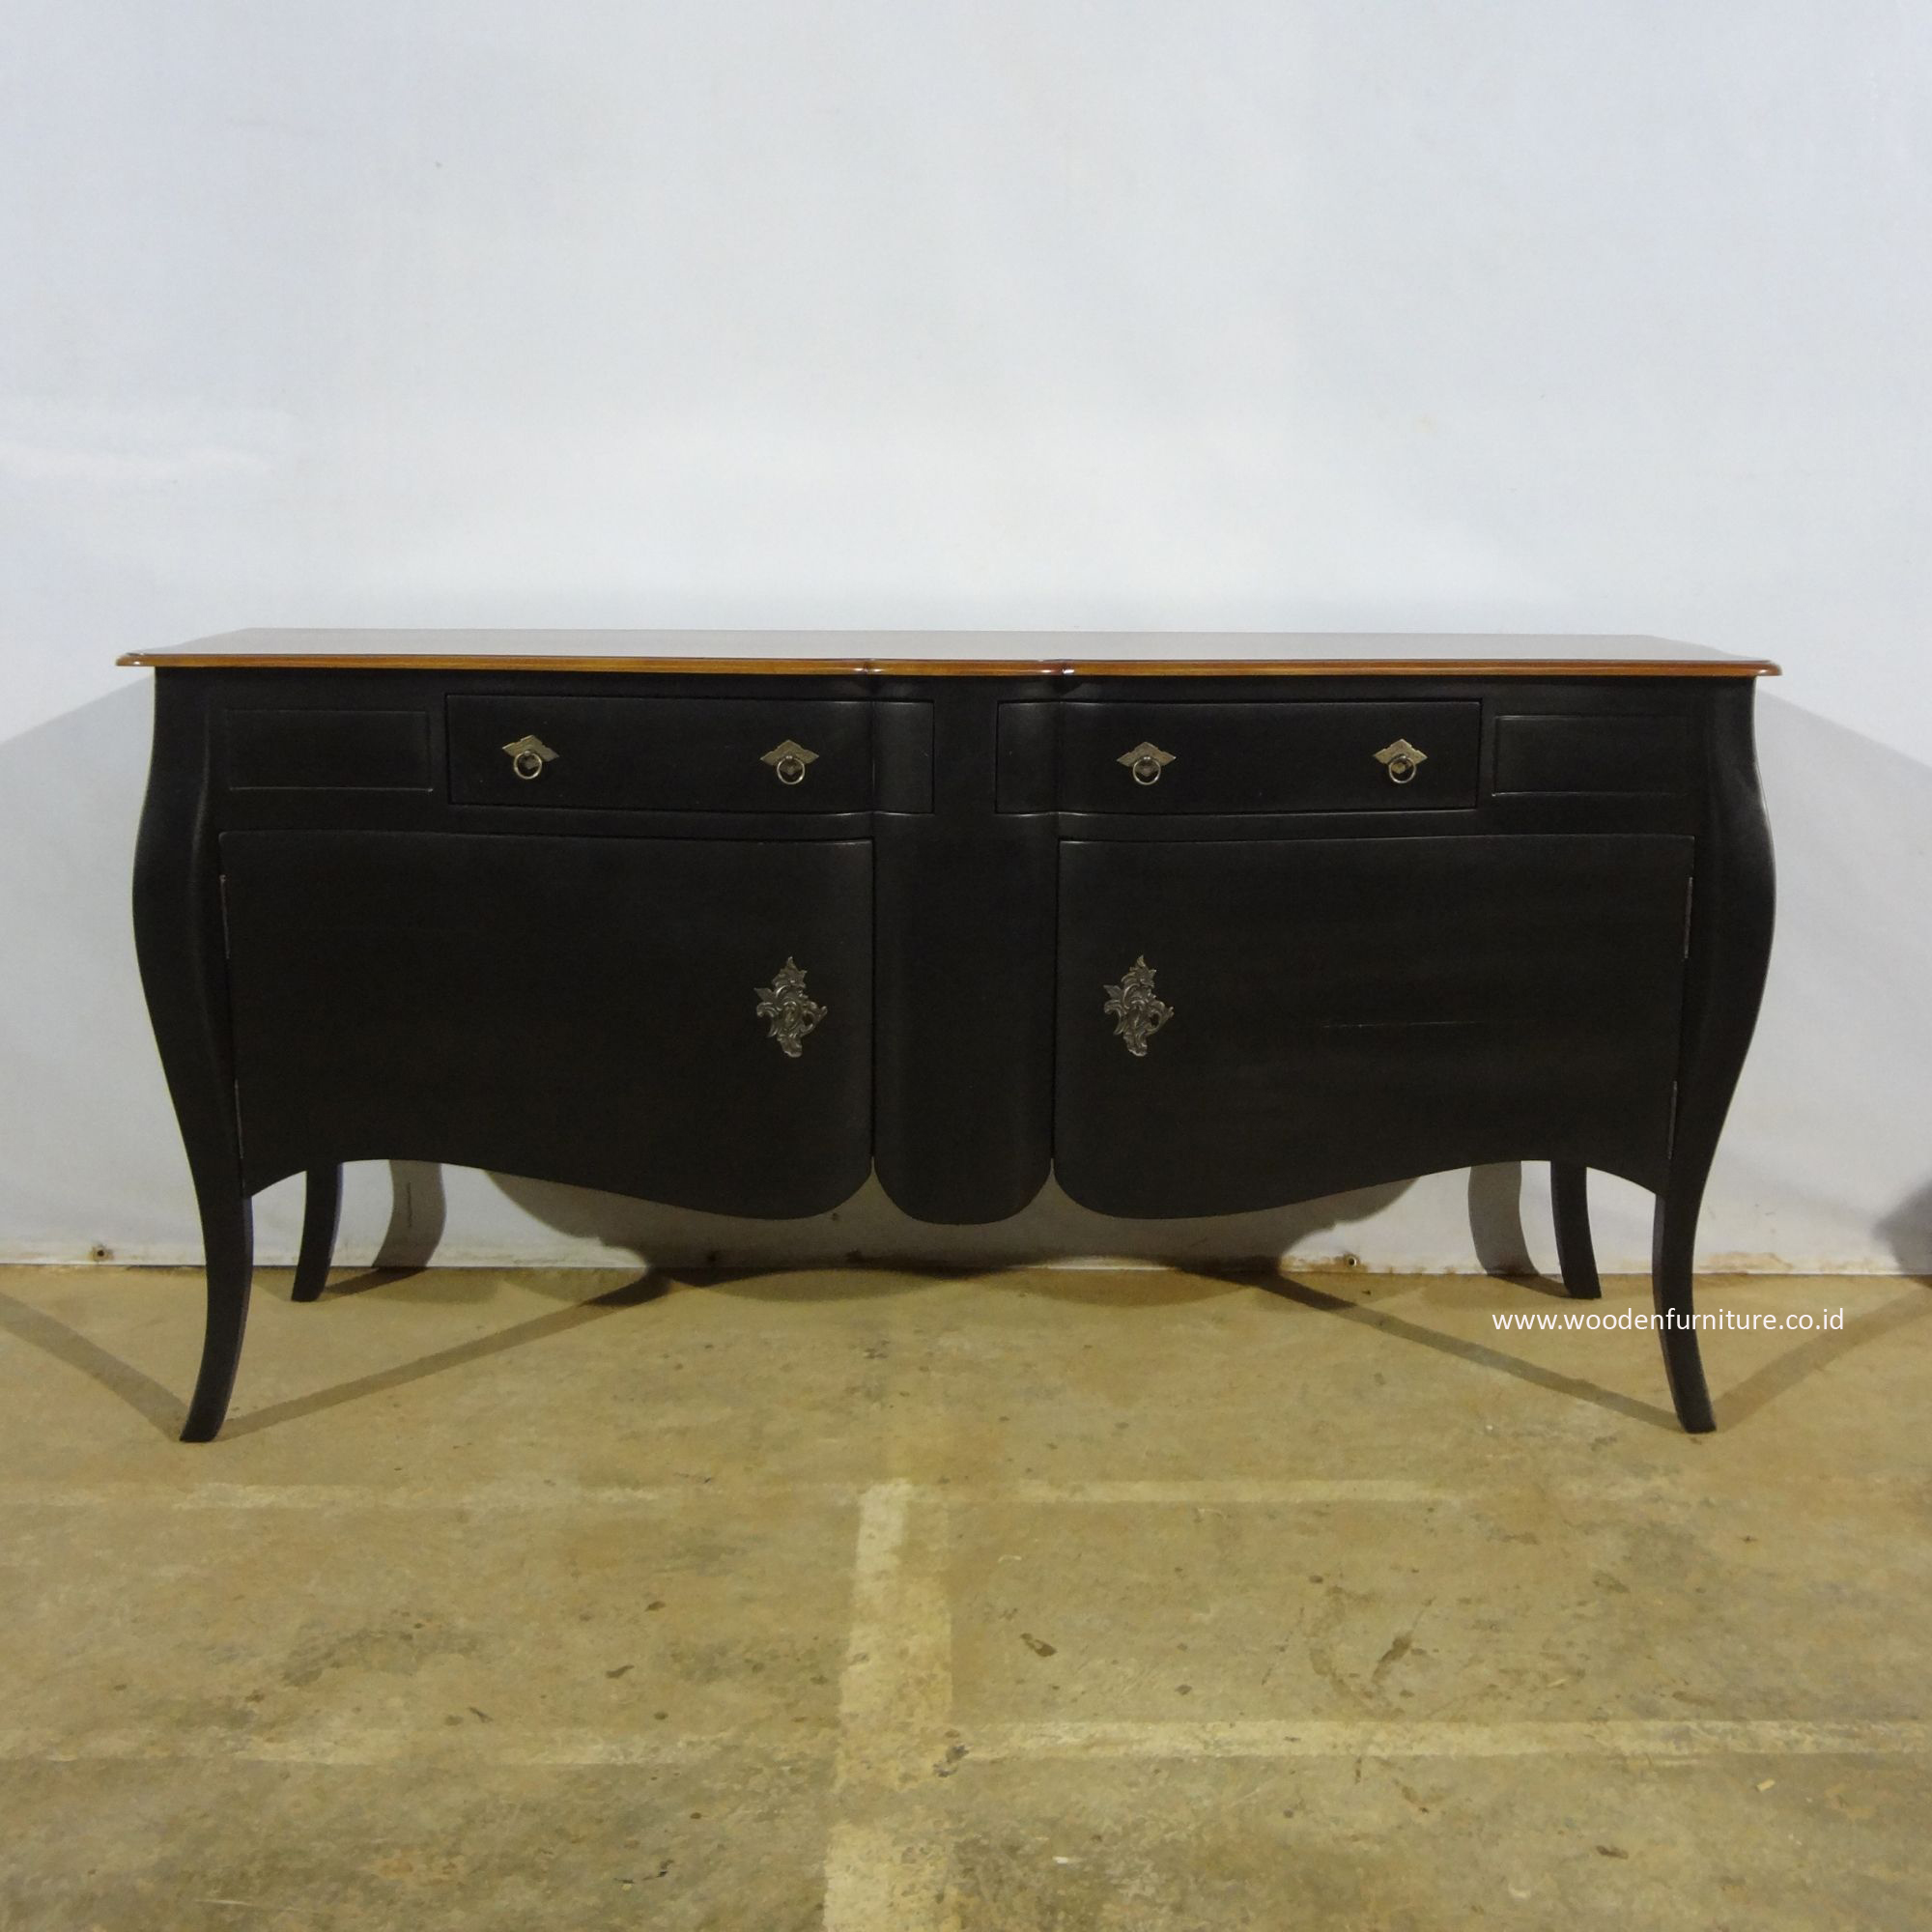 Sideboard Buffet Cabinet French Style Furniture Mahogany Painted Furniture Antique Reproduction Wooden Furniture Buy Reproduction French Provincial Furniture Dining Room Furniture Sideboard Product On Alibaba Com